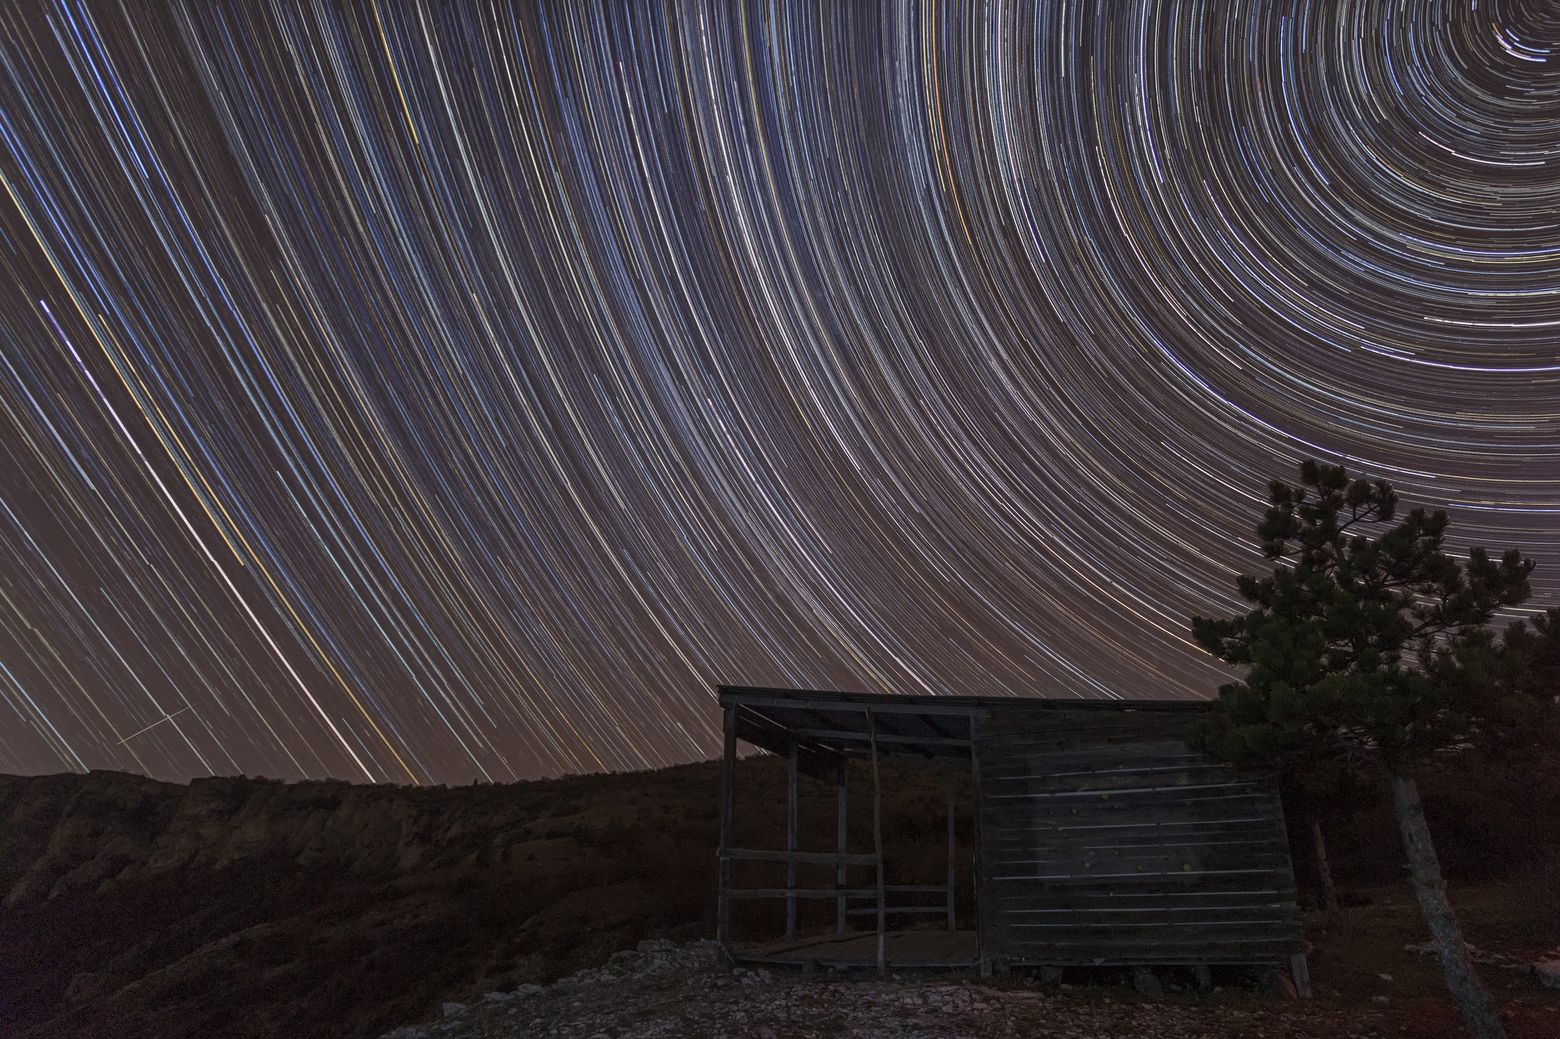 Star trail and a Shack